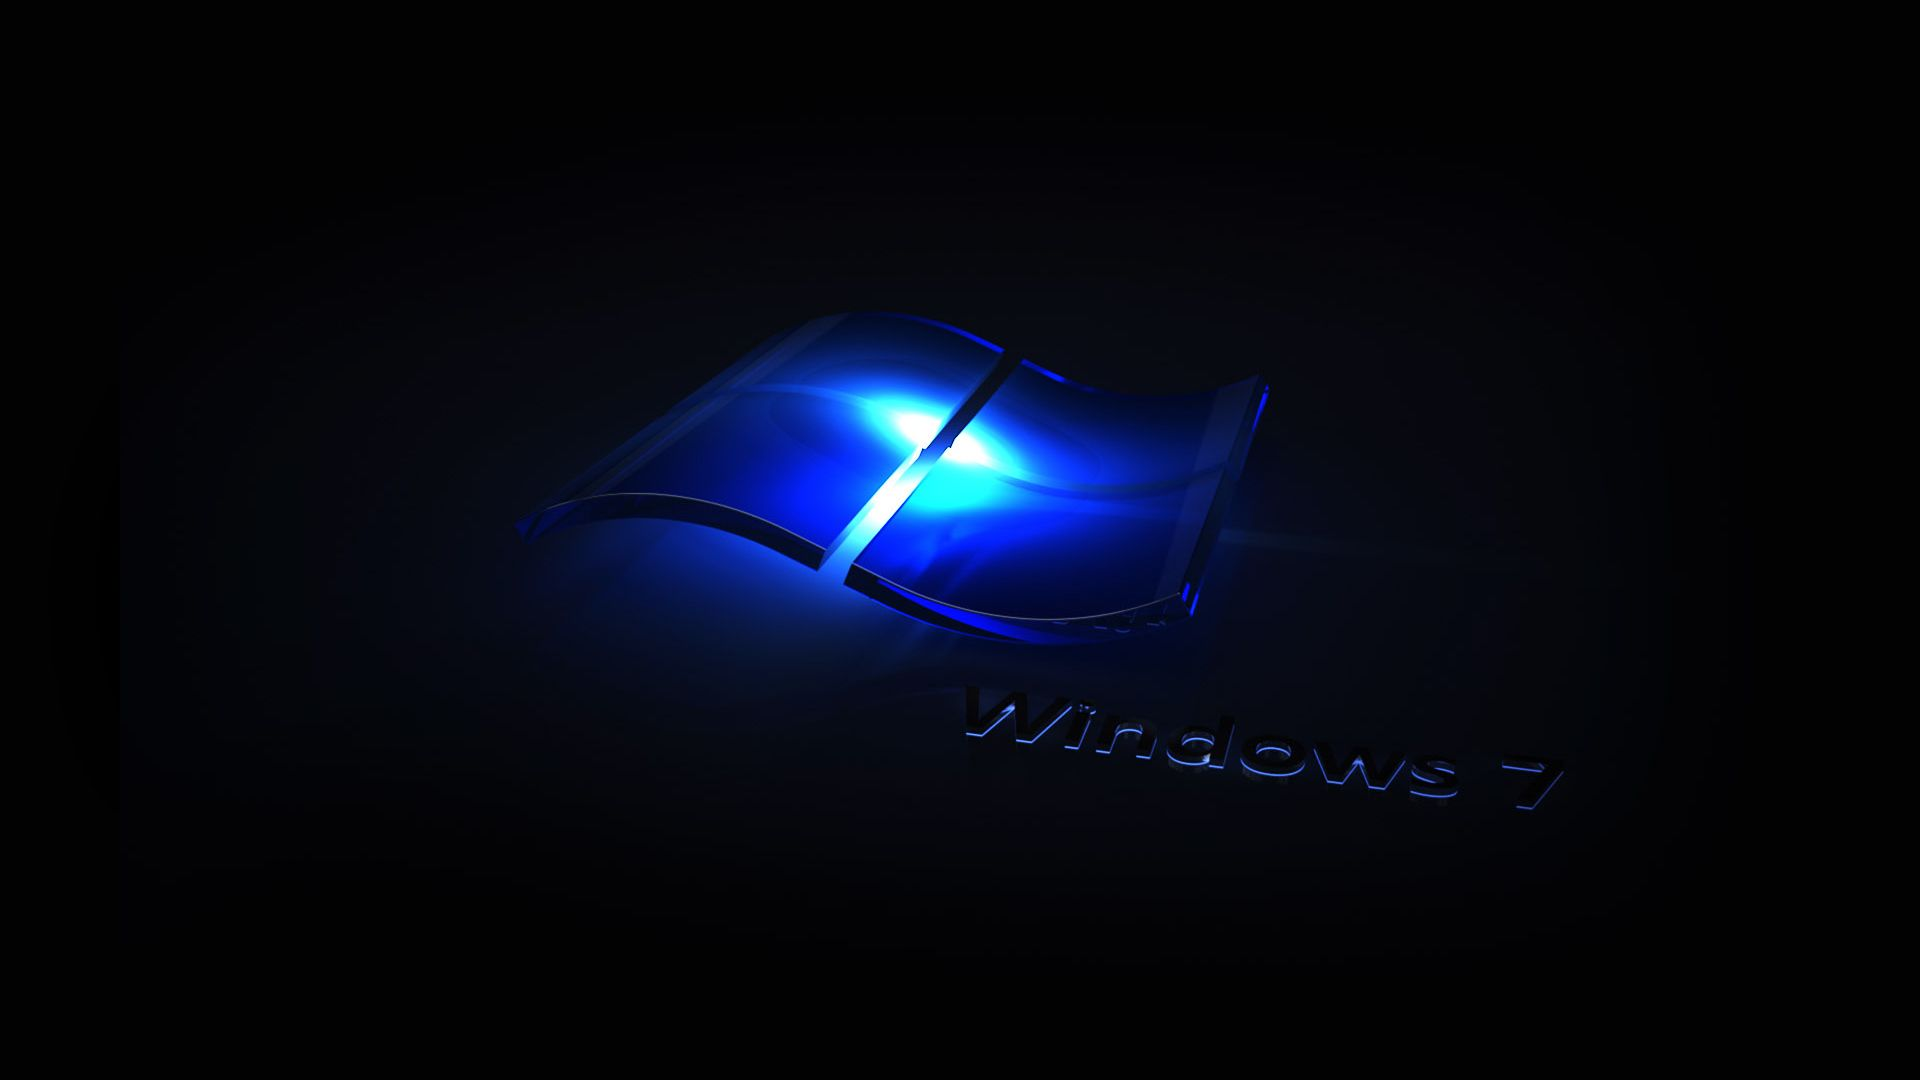 Blue Light Windows 7 Wallpaper Windows Wallpaper Windows Desktop Wallpaper Dark Wallpaper